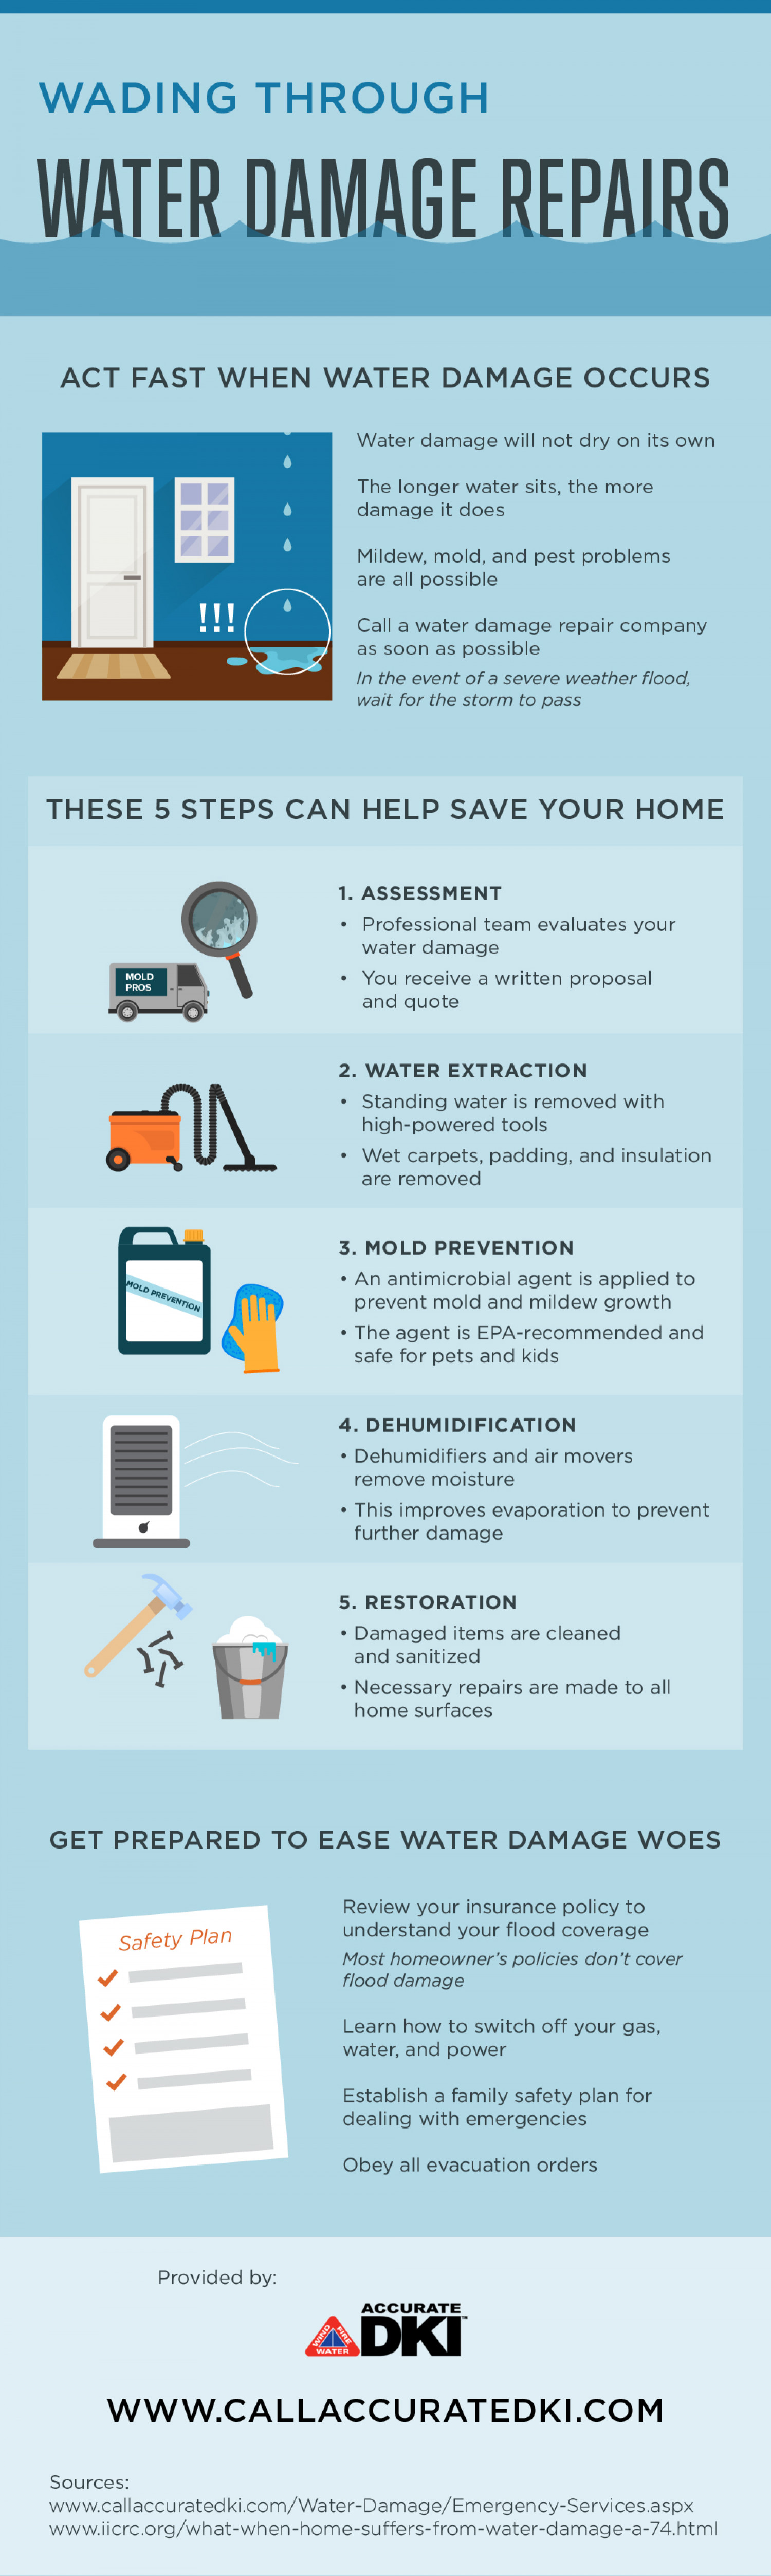 Wading Through Water Damage Repairs  Infographic